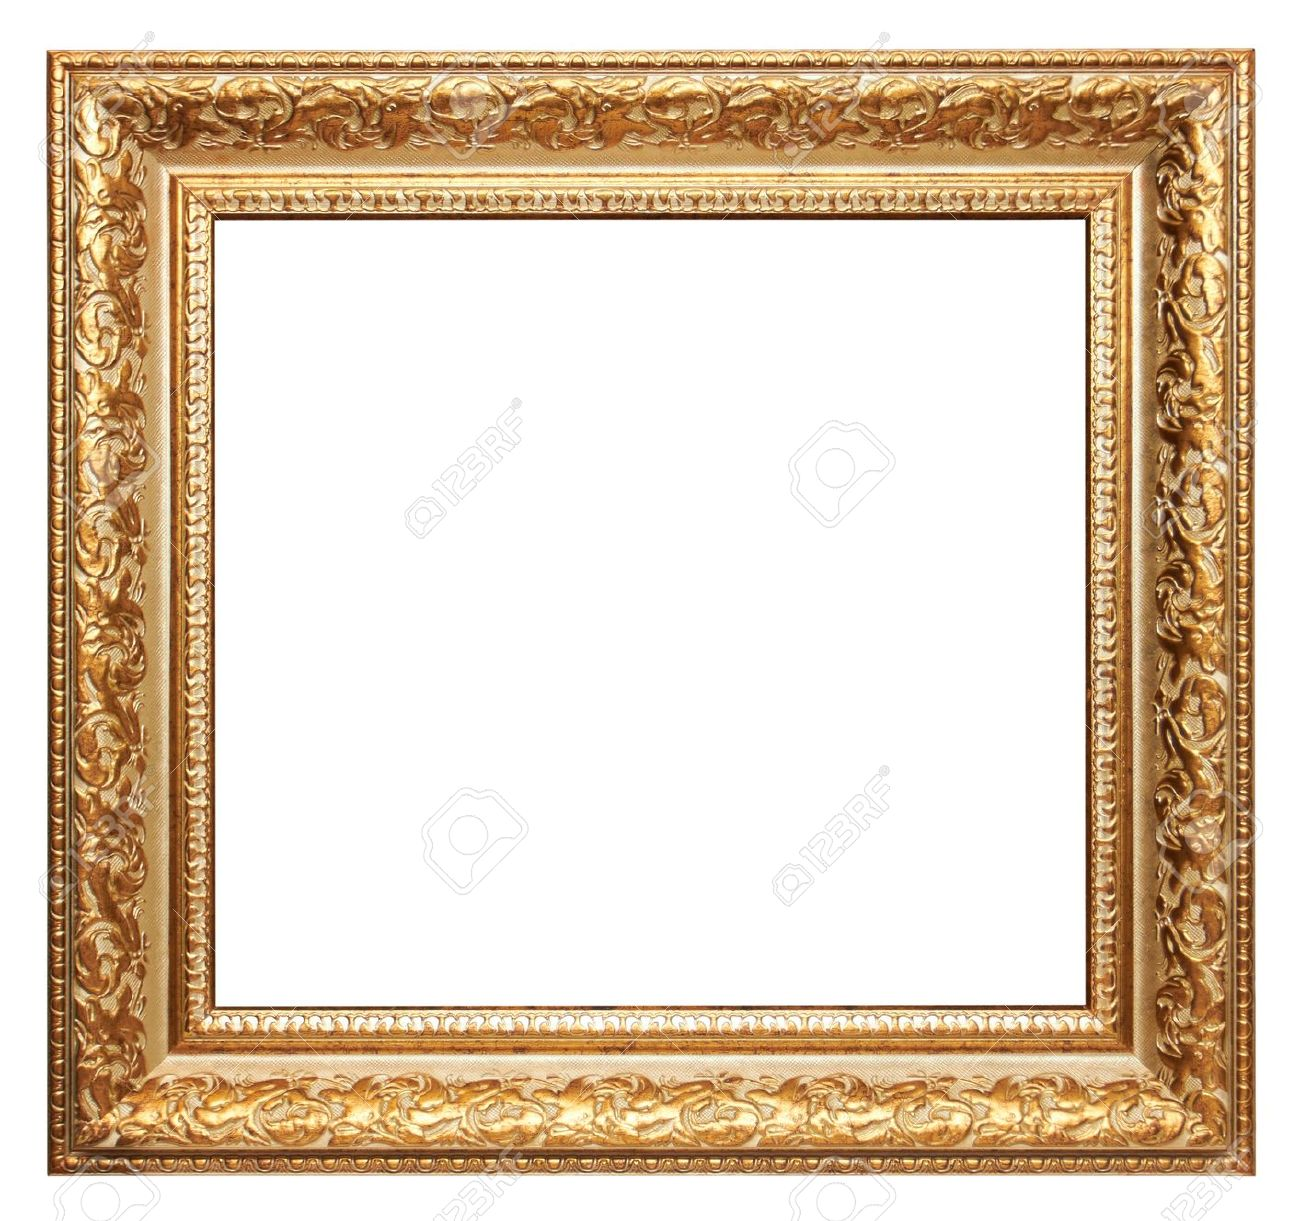 Gold Picture Frame Isolated On White Stock Photo, Picture And ...